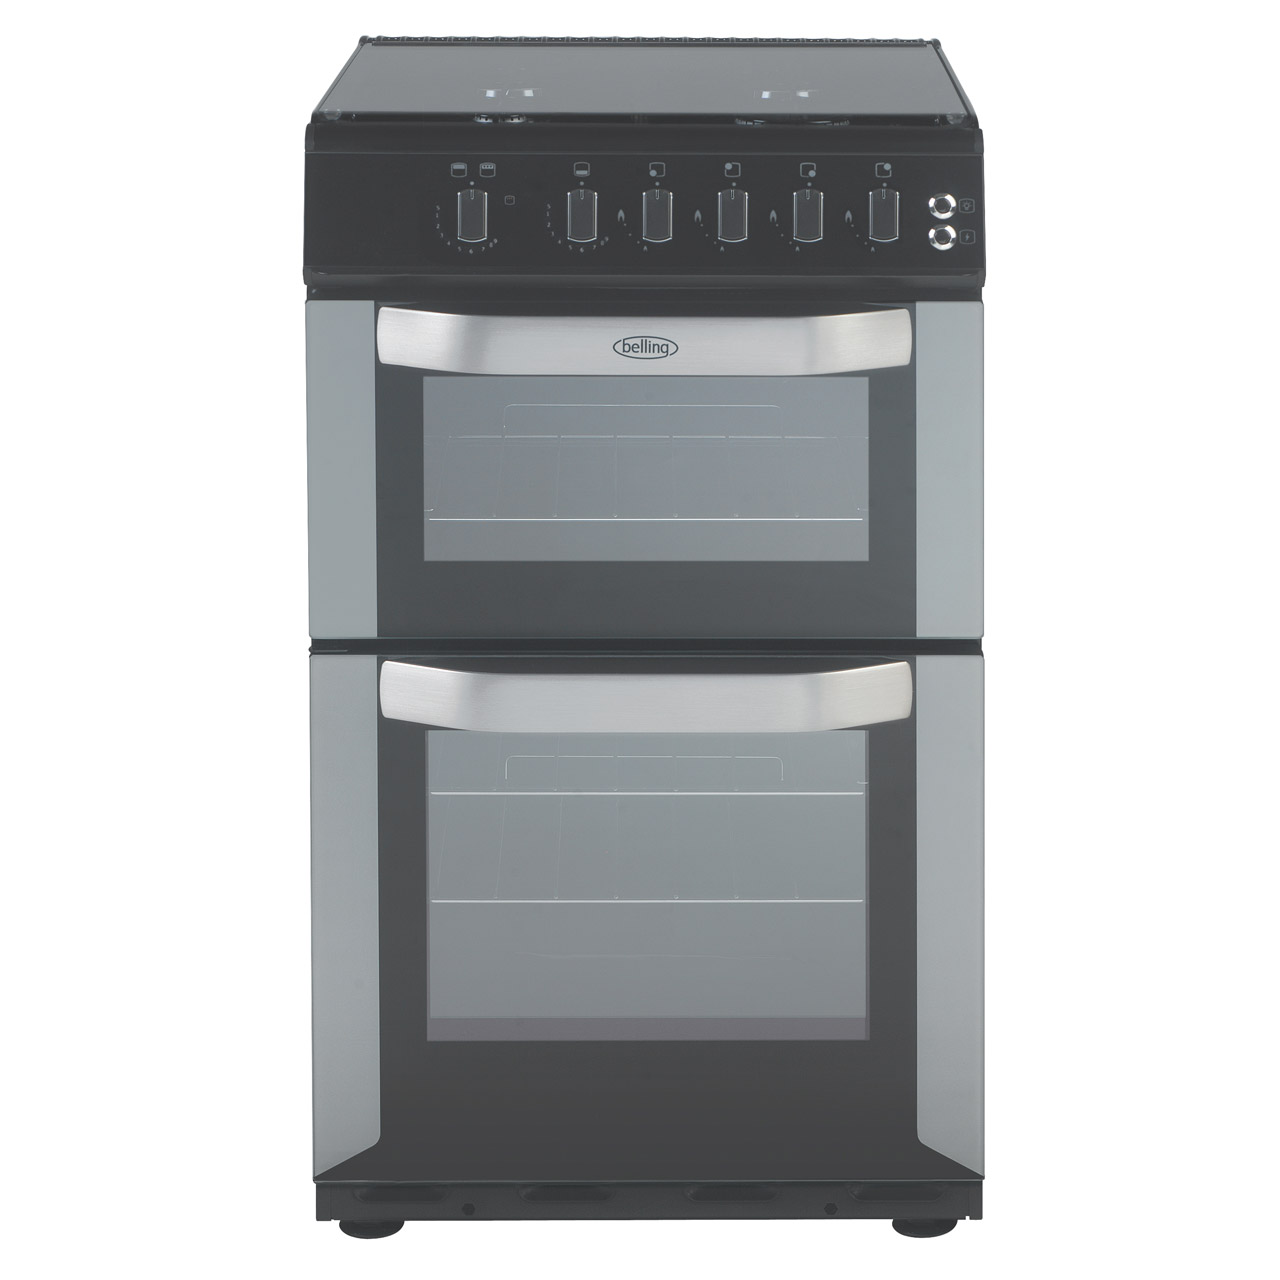 Belling Fsg50do Sil 50cm Gas Cooker In Silver Double Oven